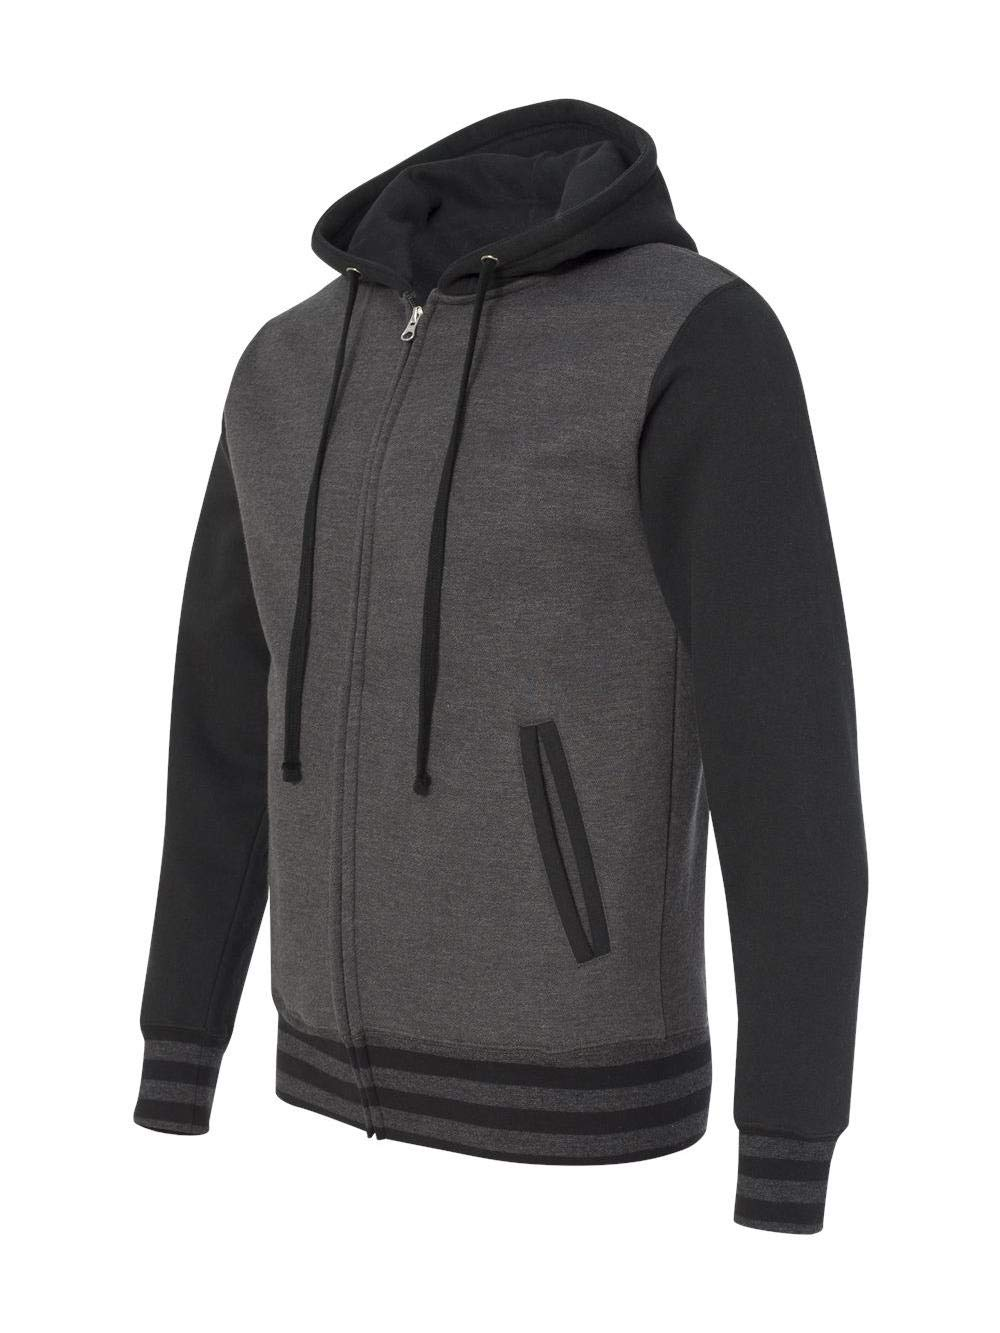 Independent Trading Co. Mens Varsity Zip Hood, 3XL, Charcoal Heather/Black by Independent Trading Co.